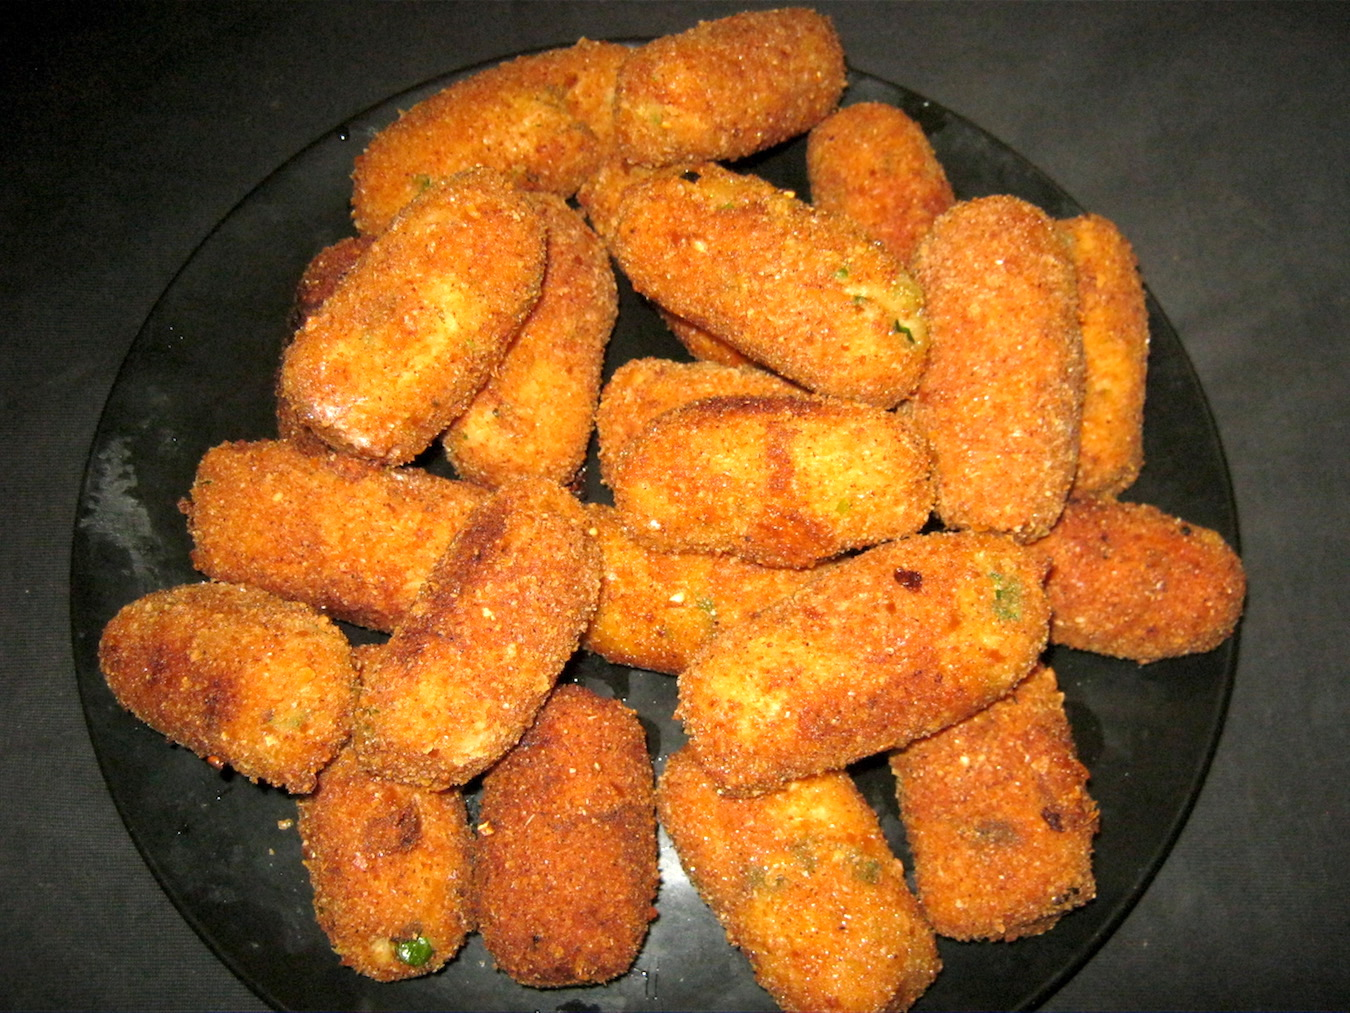 Dutch chicken croquettes on black plate